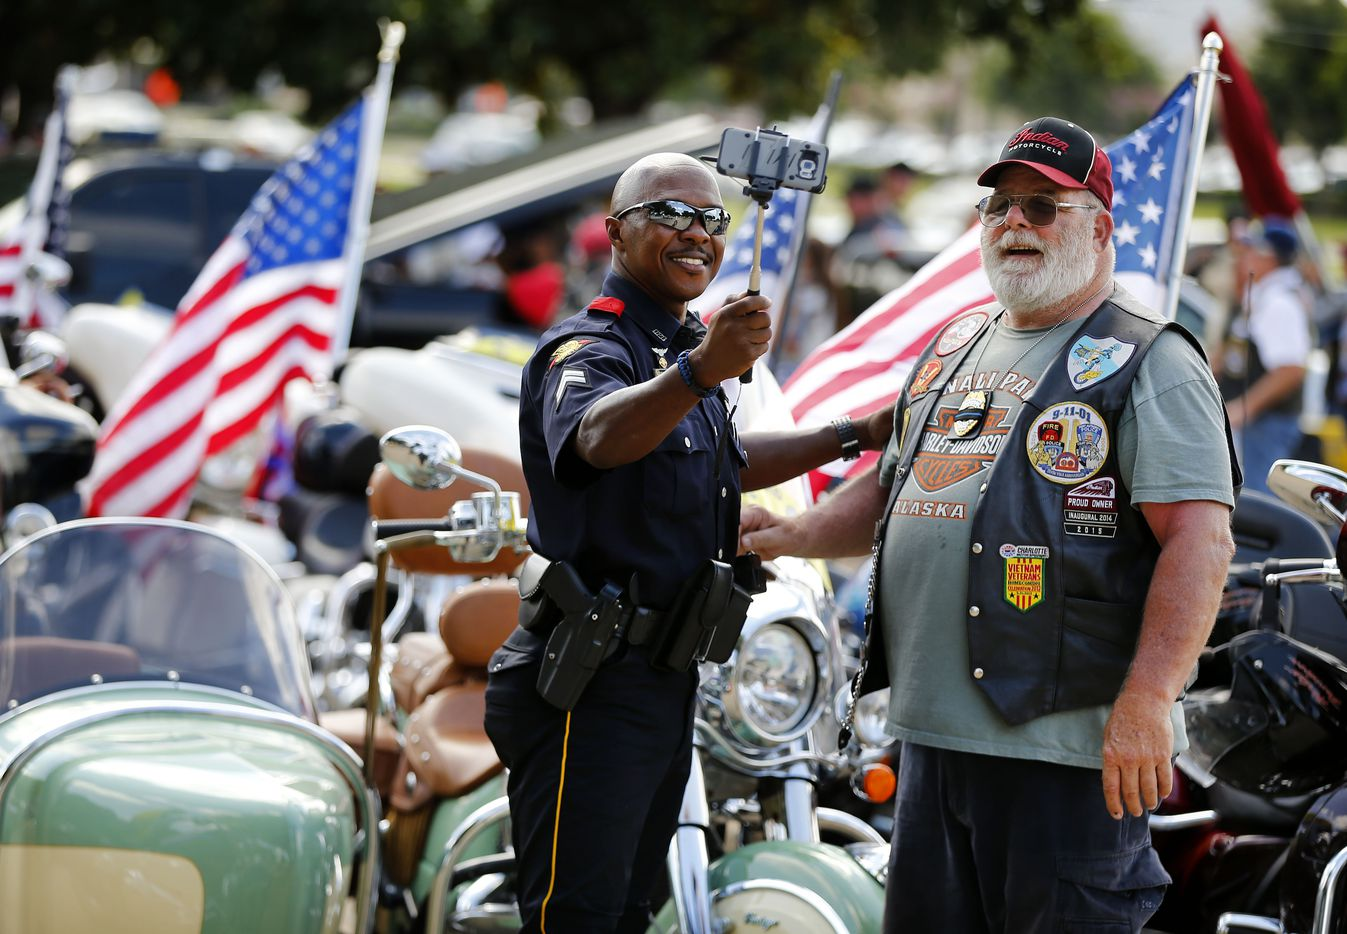 Dallas police Corporal Michael Scott of the motorcycle unit (left) takes a selfie with motorcyclist Mike Delong as they wait for the funeral procession of fallen Dallas police officer Lorne Ahrens at Prestonwood Baptist Church in Plano, Wednesday, July 12, 2016.